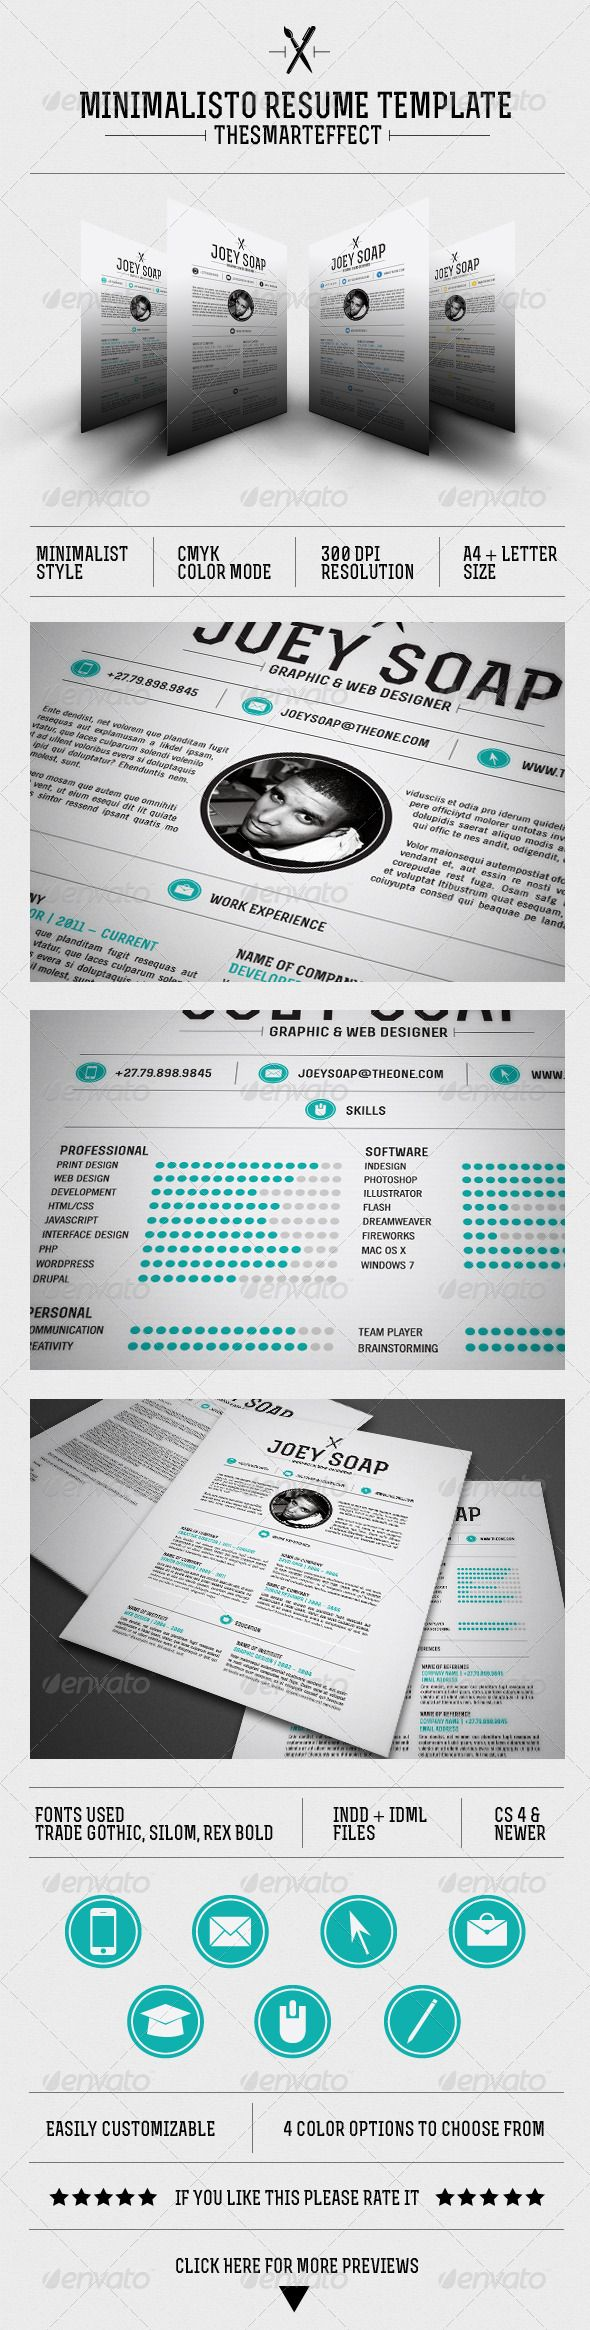 Best Cvs Images On   Creative Resume Resume Design